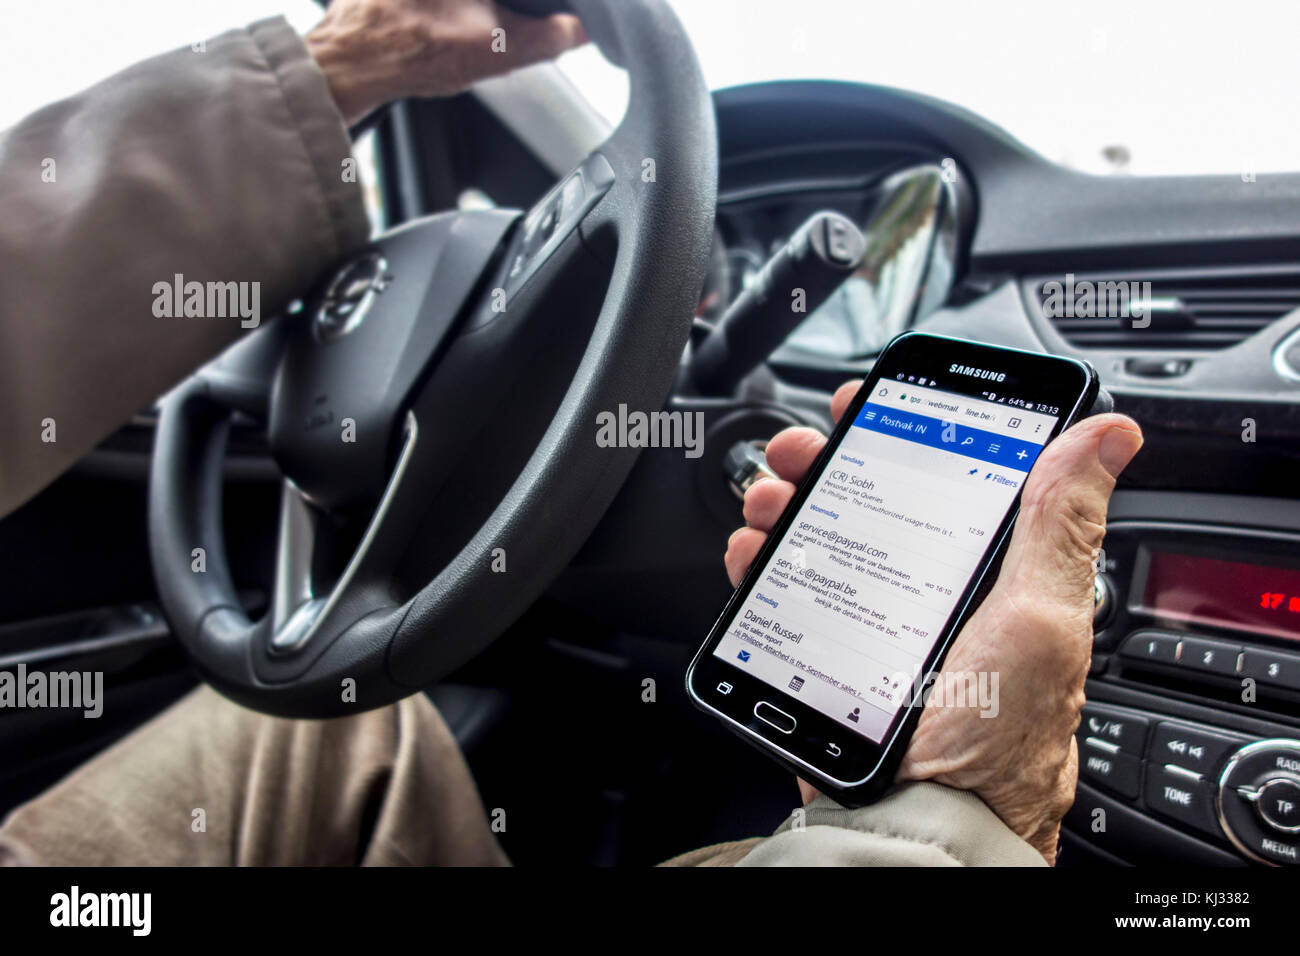 Irresponsible man at steering wheel checking messages on smart phone / smartphone / cellphone while driving car Stock Photo